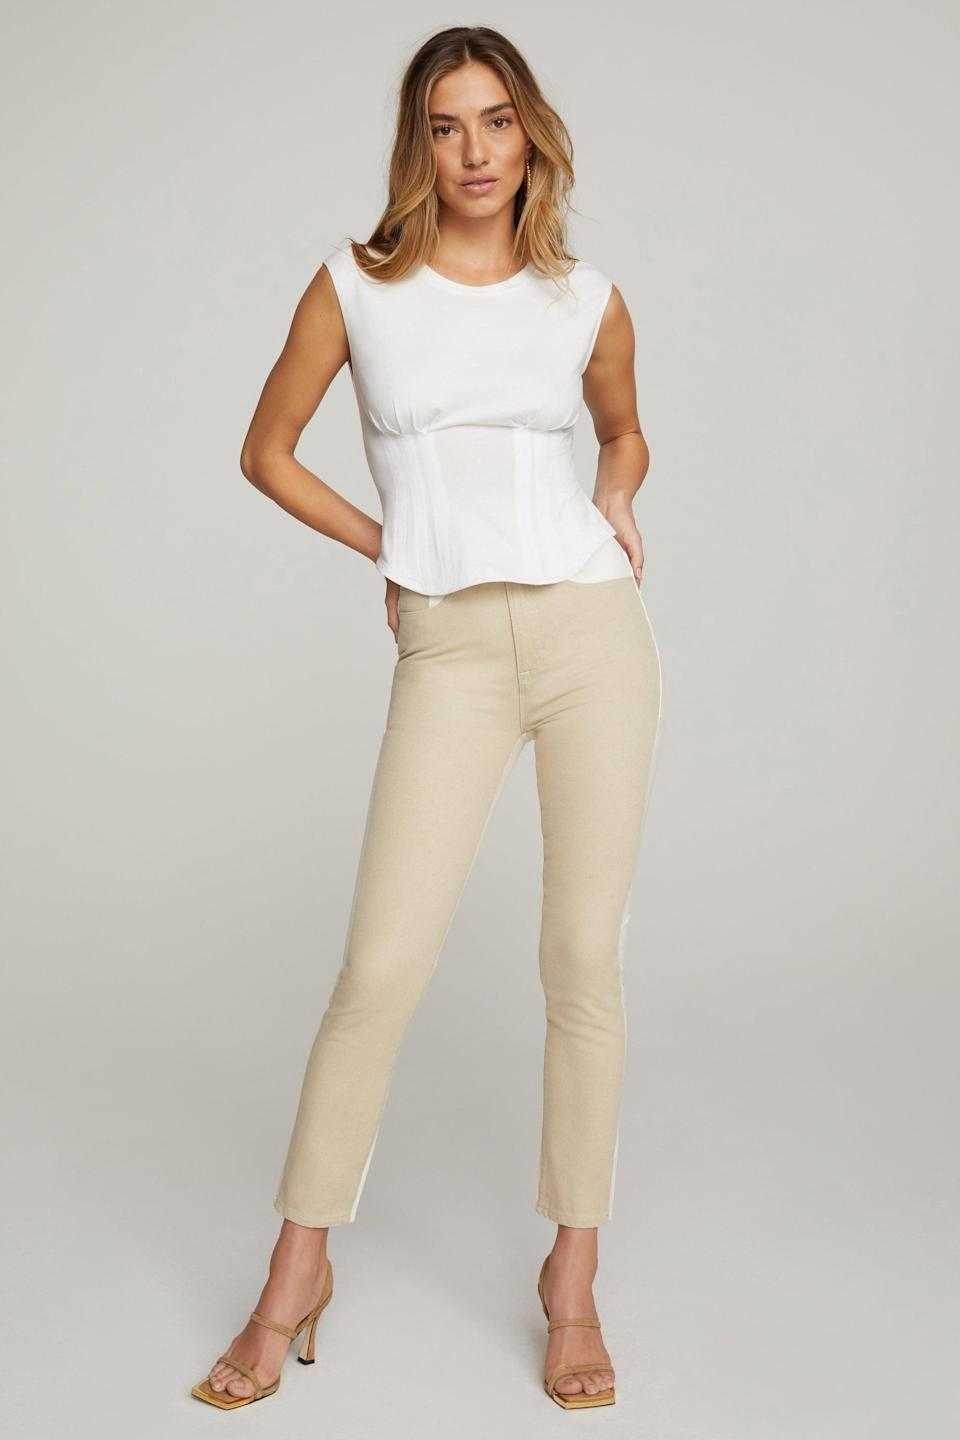 <p>This <span>Good American Corseted Tee</span> ($59) comes in four different colors, but we love the versatility of the white. If you like the look of a corset but are concerned with comfort, this is the style for you.</p>